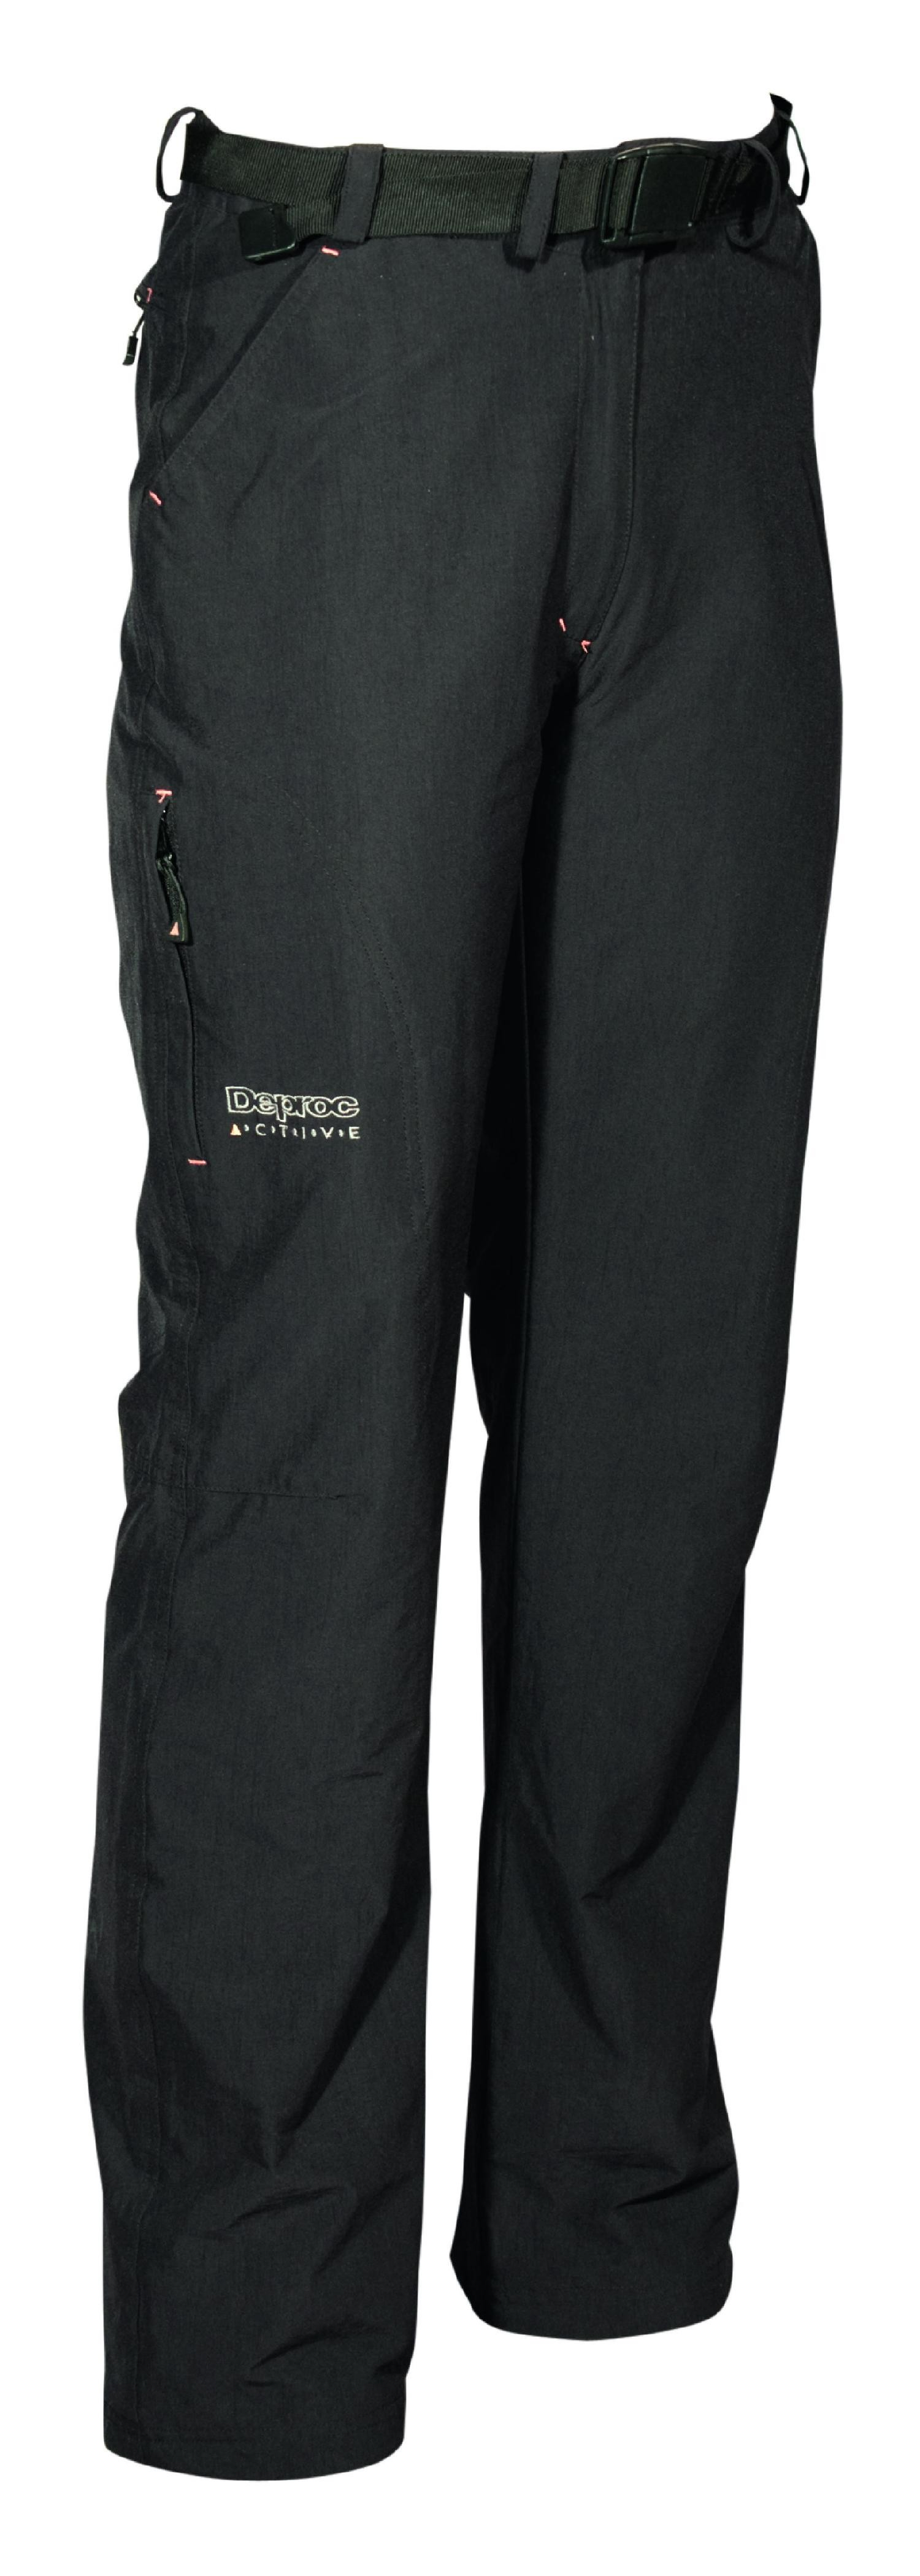 DEPROC BRANDON Damen-Winterhose und Thermohose